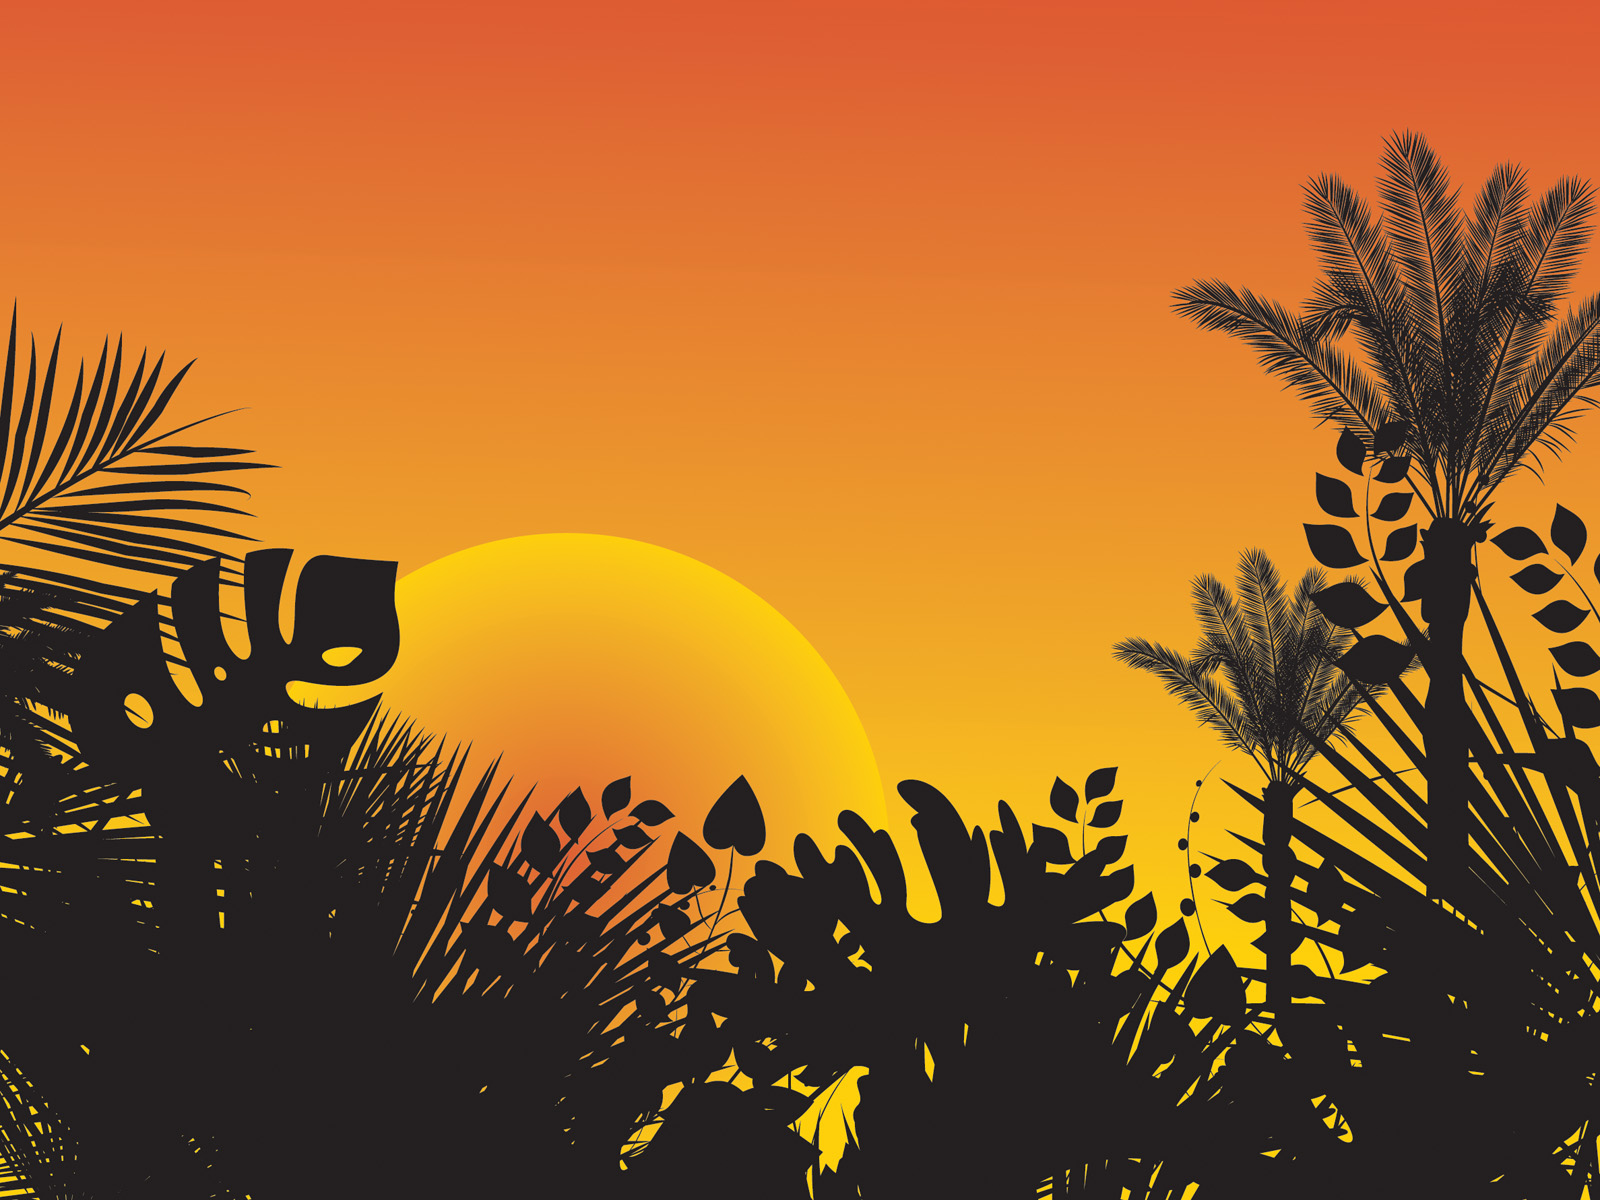 Tropical Sunset Backgrounds Design Templates Free Ppt